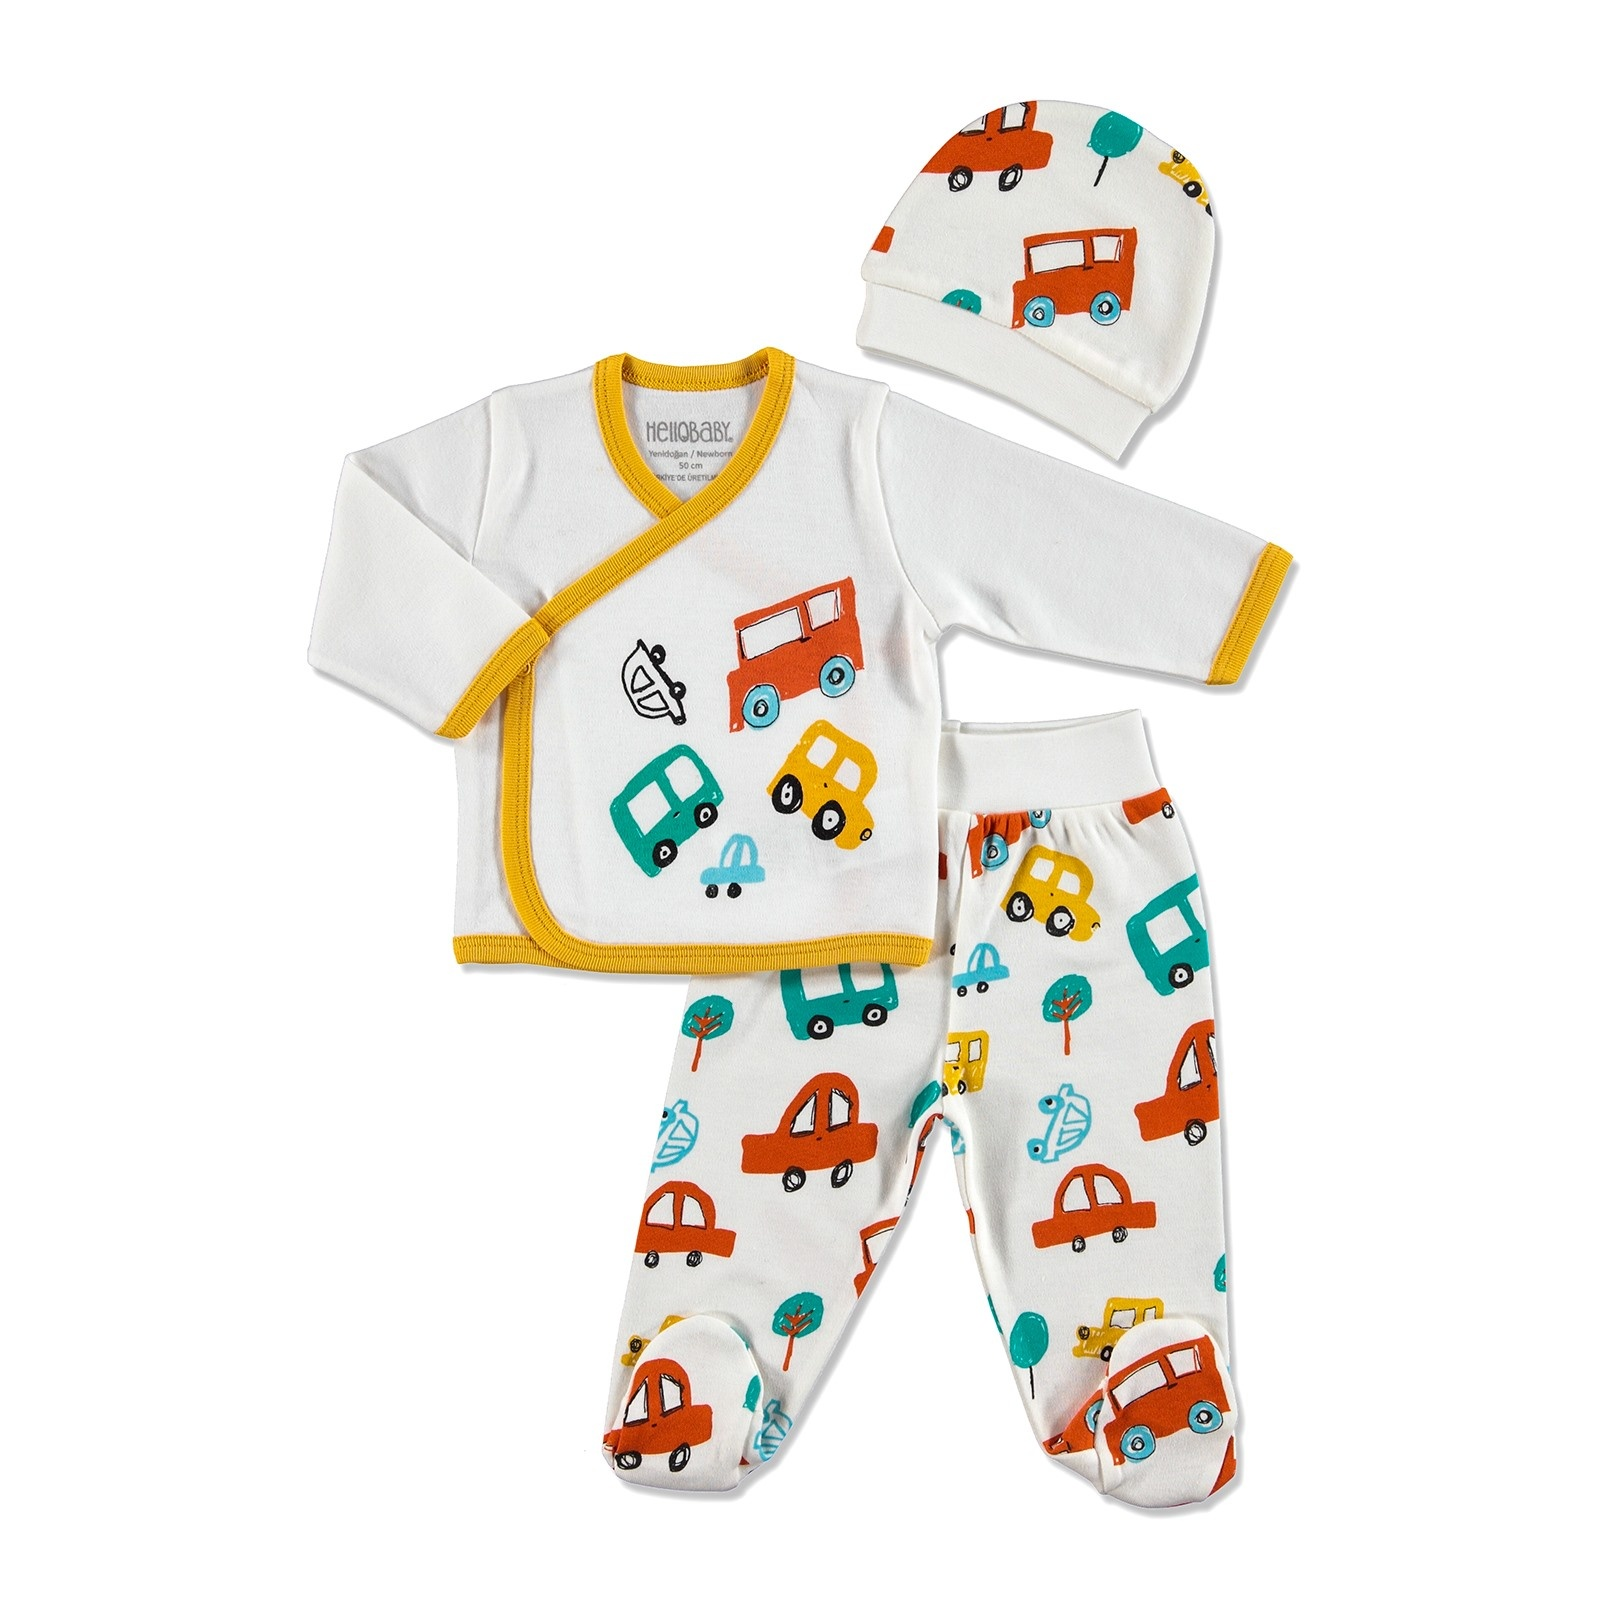 Ebebek HelloBaby Vehicles Baby Snapsuit Hat Footed Pant 3 Pcs Set